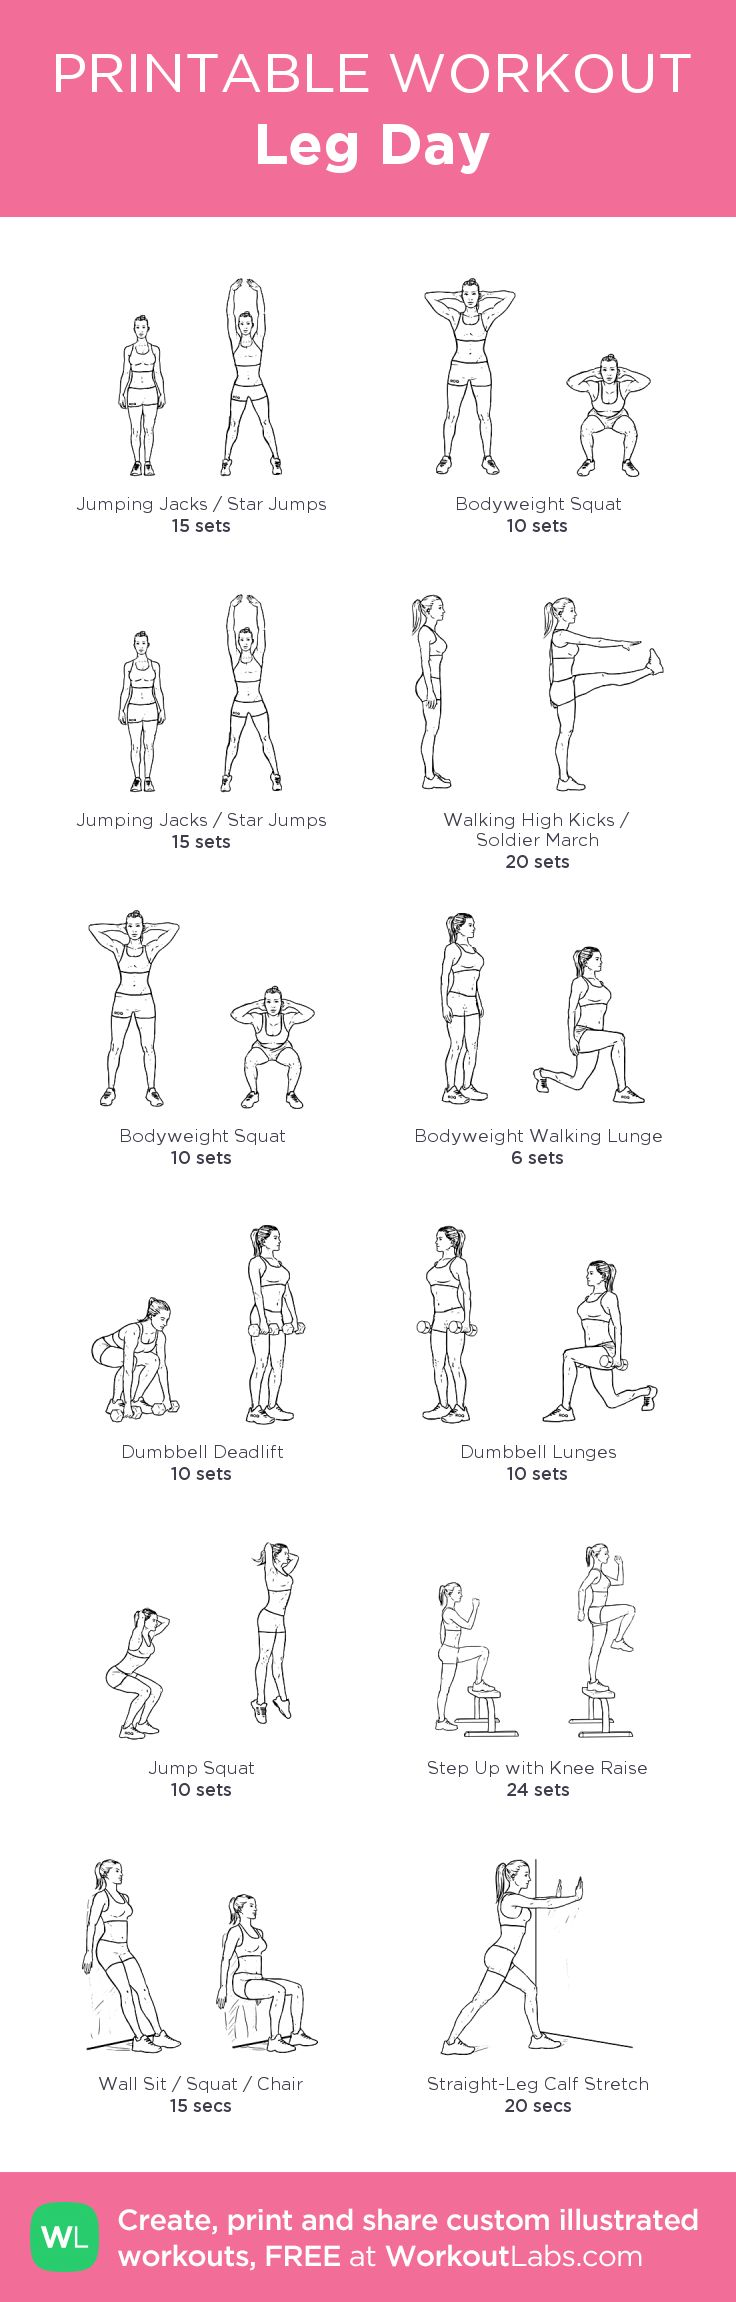 Leg Day:my visual workout created at WorkoutLabs.com • Click through to customize and download as a FREE PDF! #customworkout